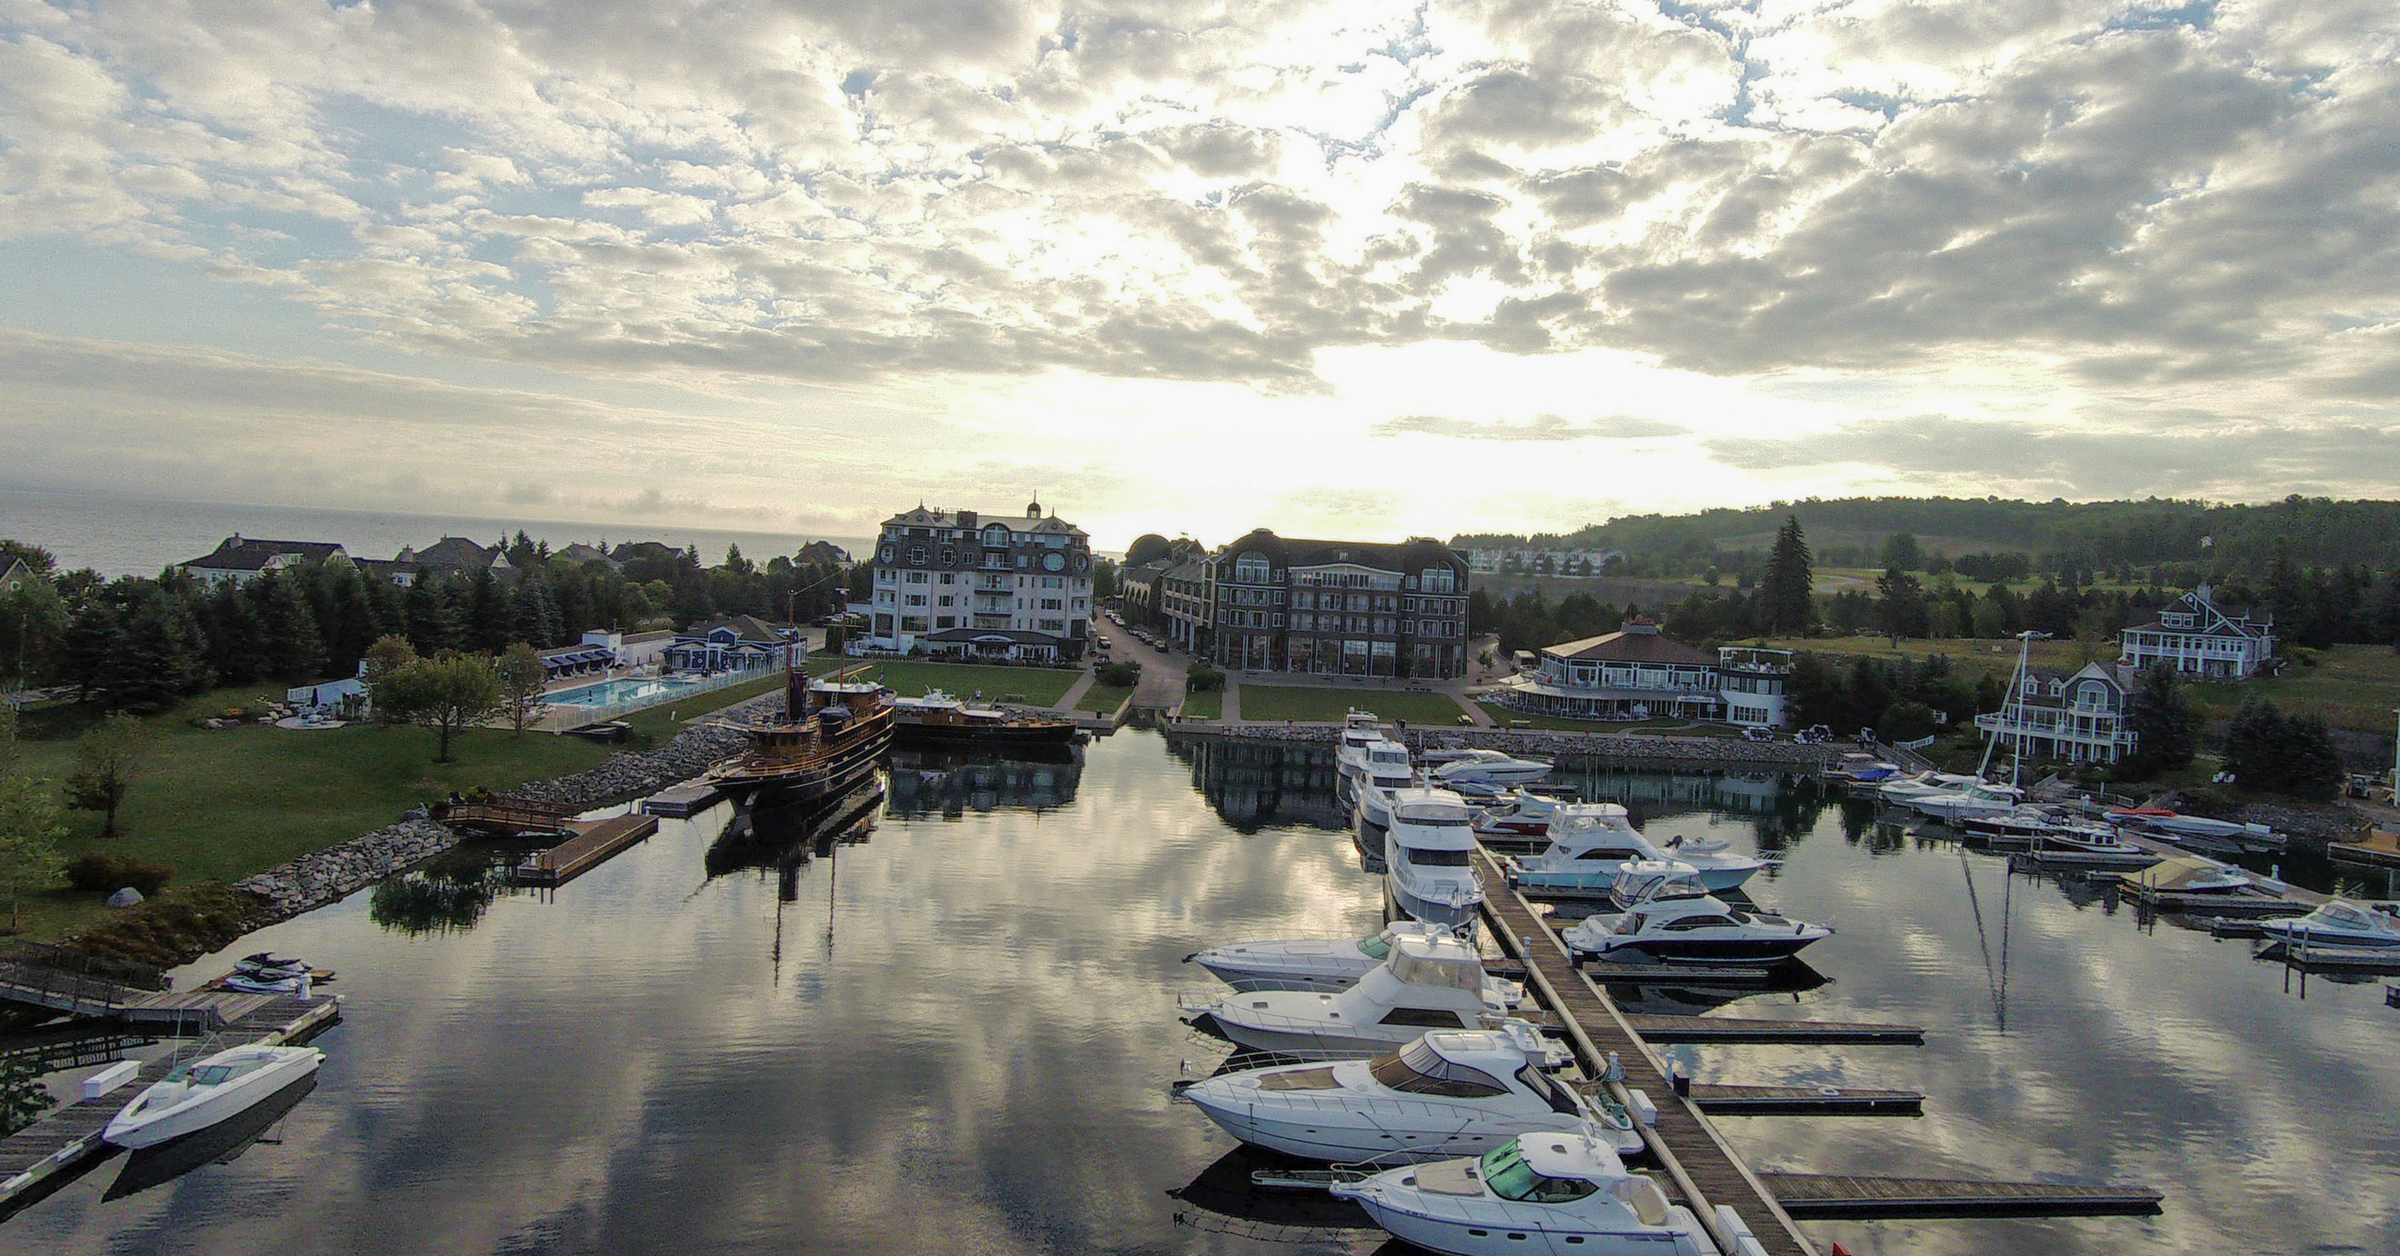 Bay Harbor Lake Marina: the Nautical Center of the Great Lakes